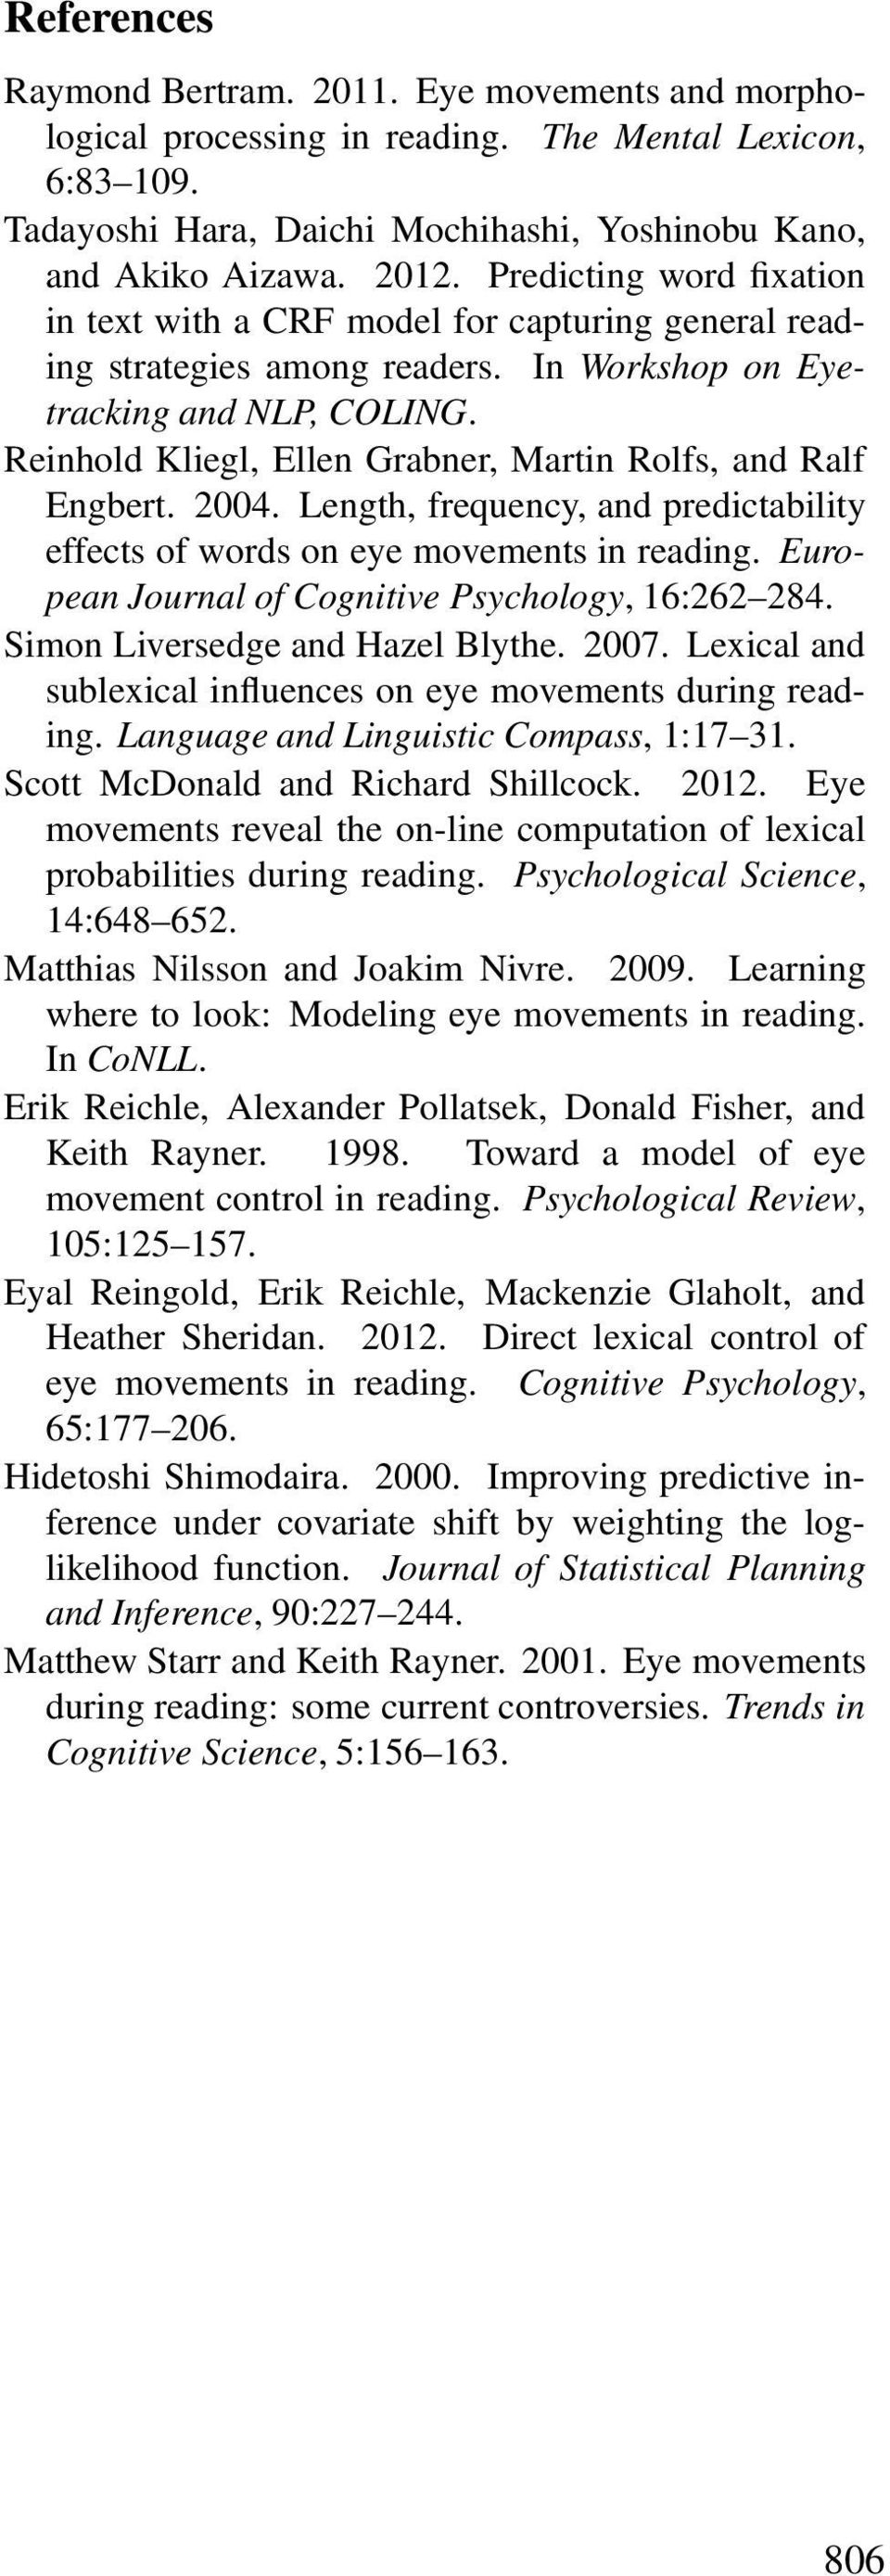 Reinhold Kliegl, Ellen Grabner, Martin Rolfs, and Ralf Engbert. 2004. Length, frequency, and predictability effects of words on eye movements in reading.